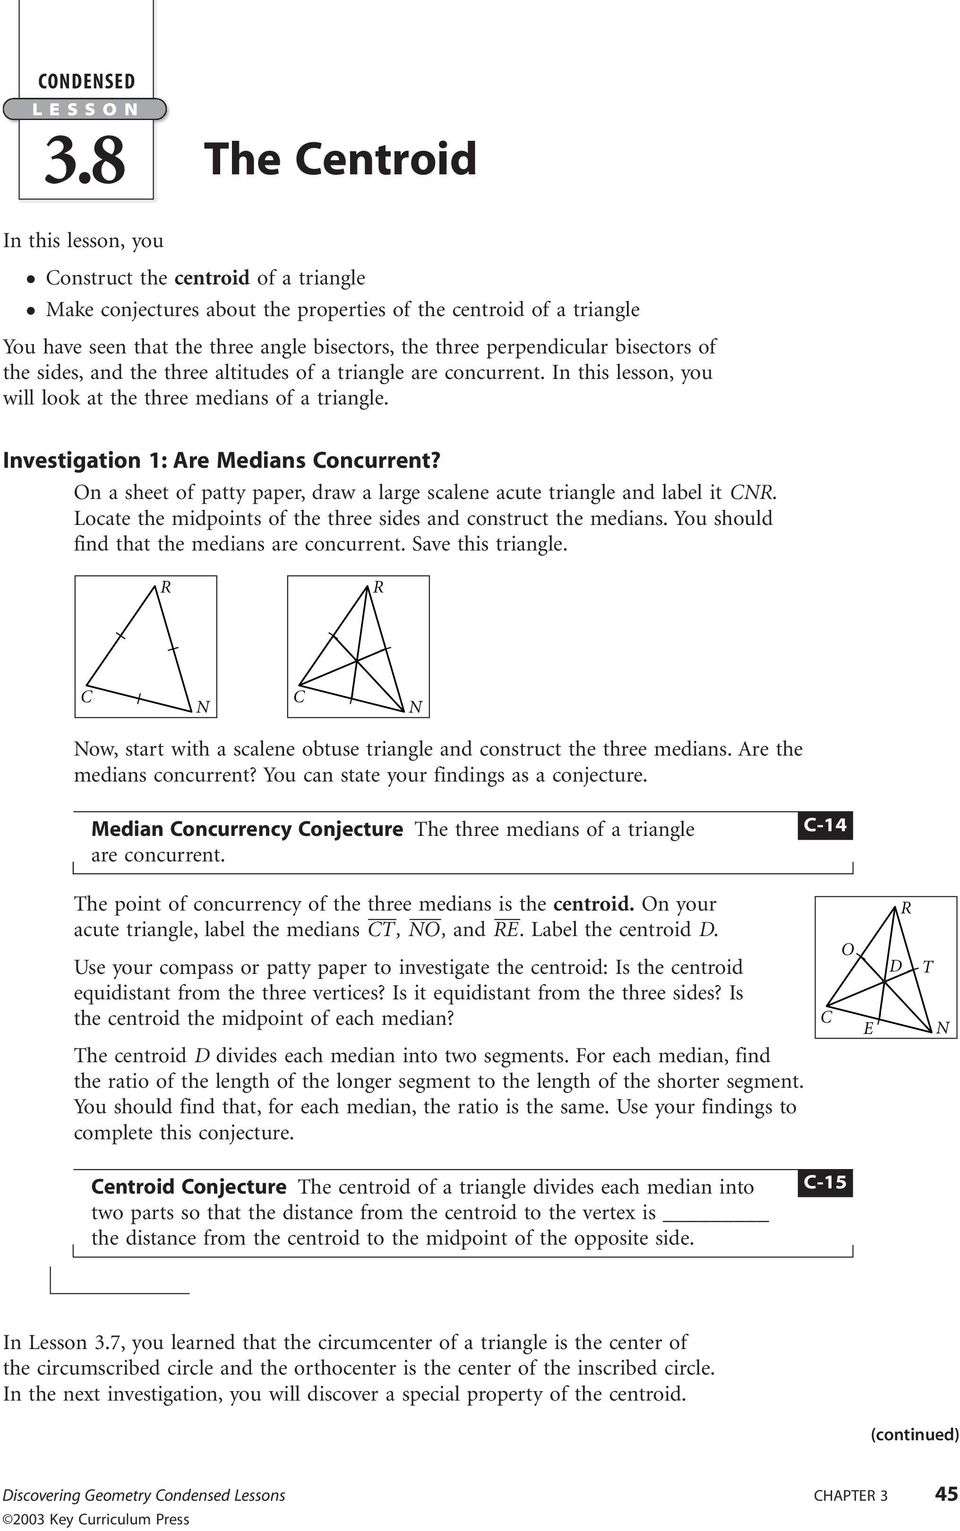 perpendicular bisectors of the sides, and the three altitudes of a triangle are concurrent. In this lesson, you will look at the three medians of a triangle. Investigation 1: re Medians Concurrent?